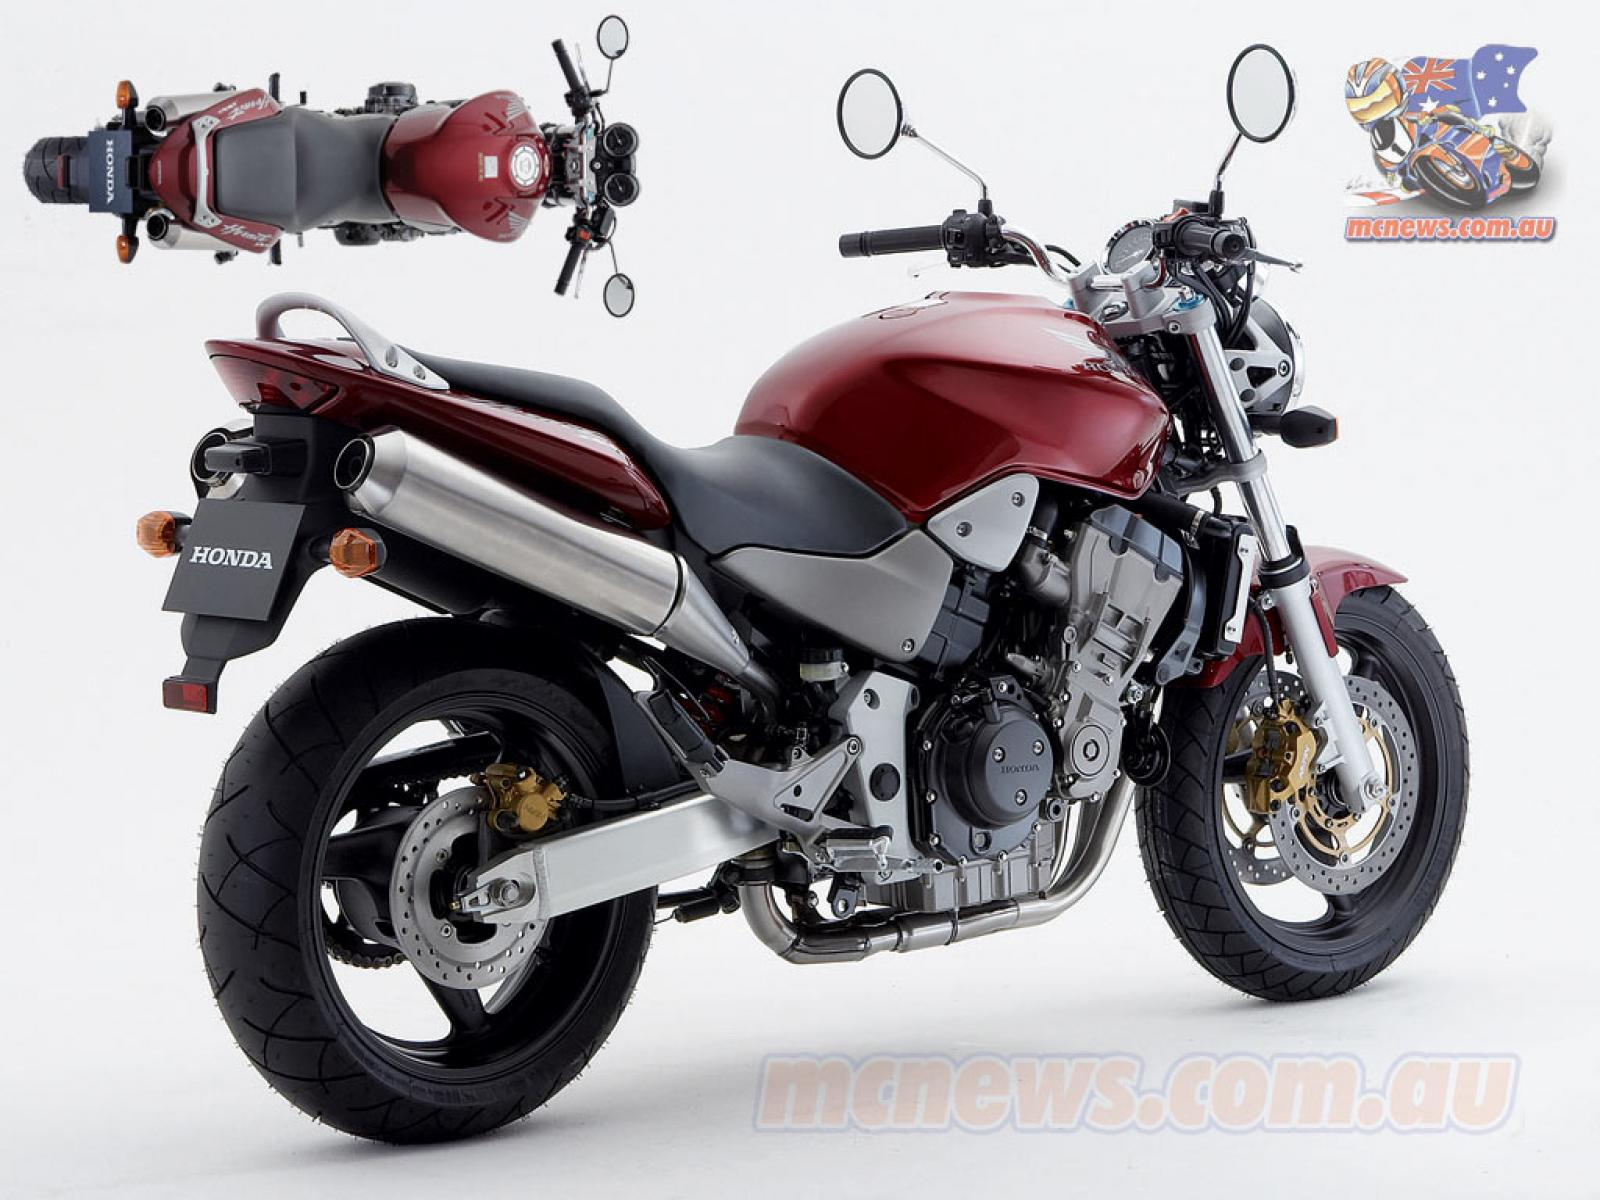 honda honda cb900f hornet moto zombdrive com. Black Bedroom Furniture Sets. Home Design Ideas